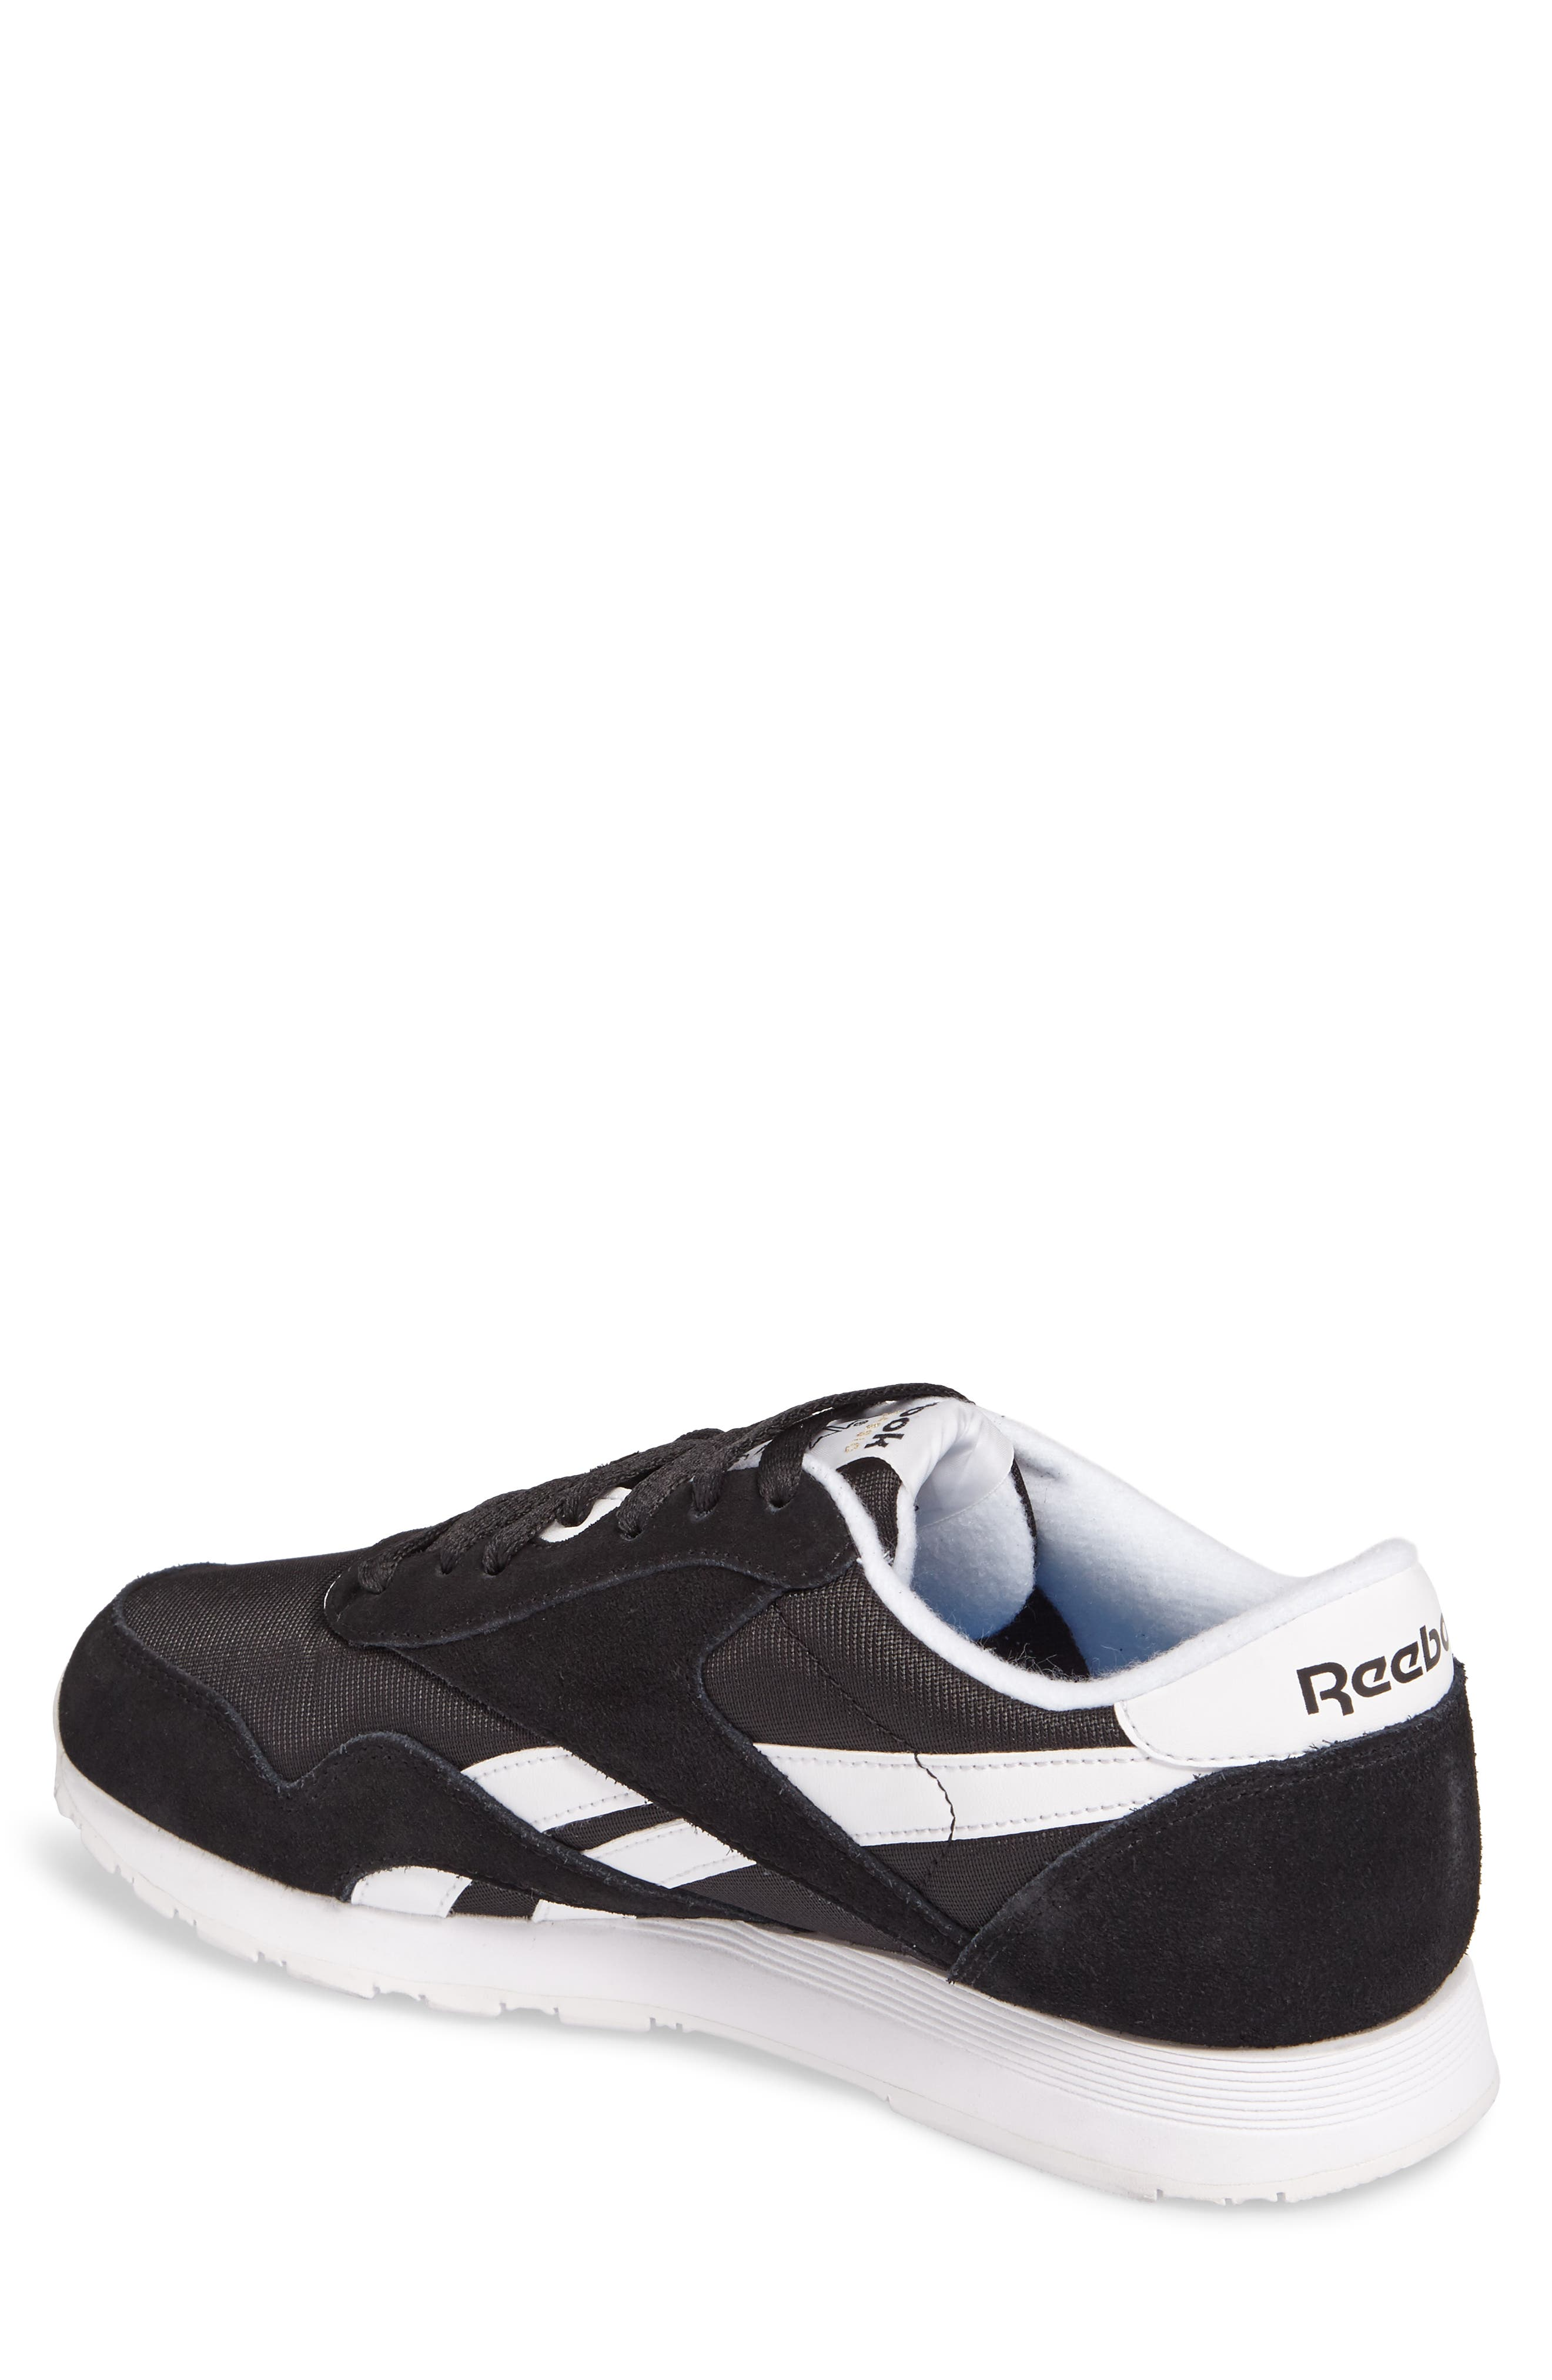 Classic Nylon Sneaker,                             Alternate thumbnail 2, color,                             001